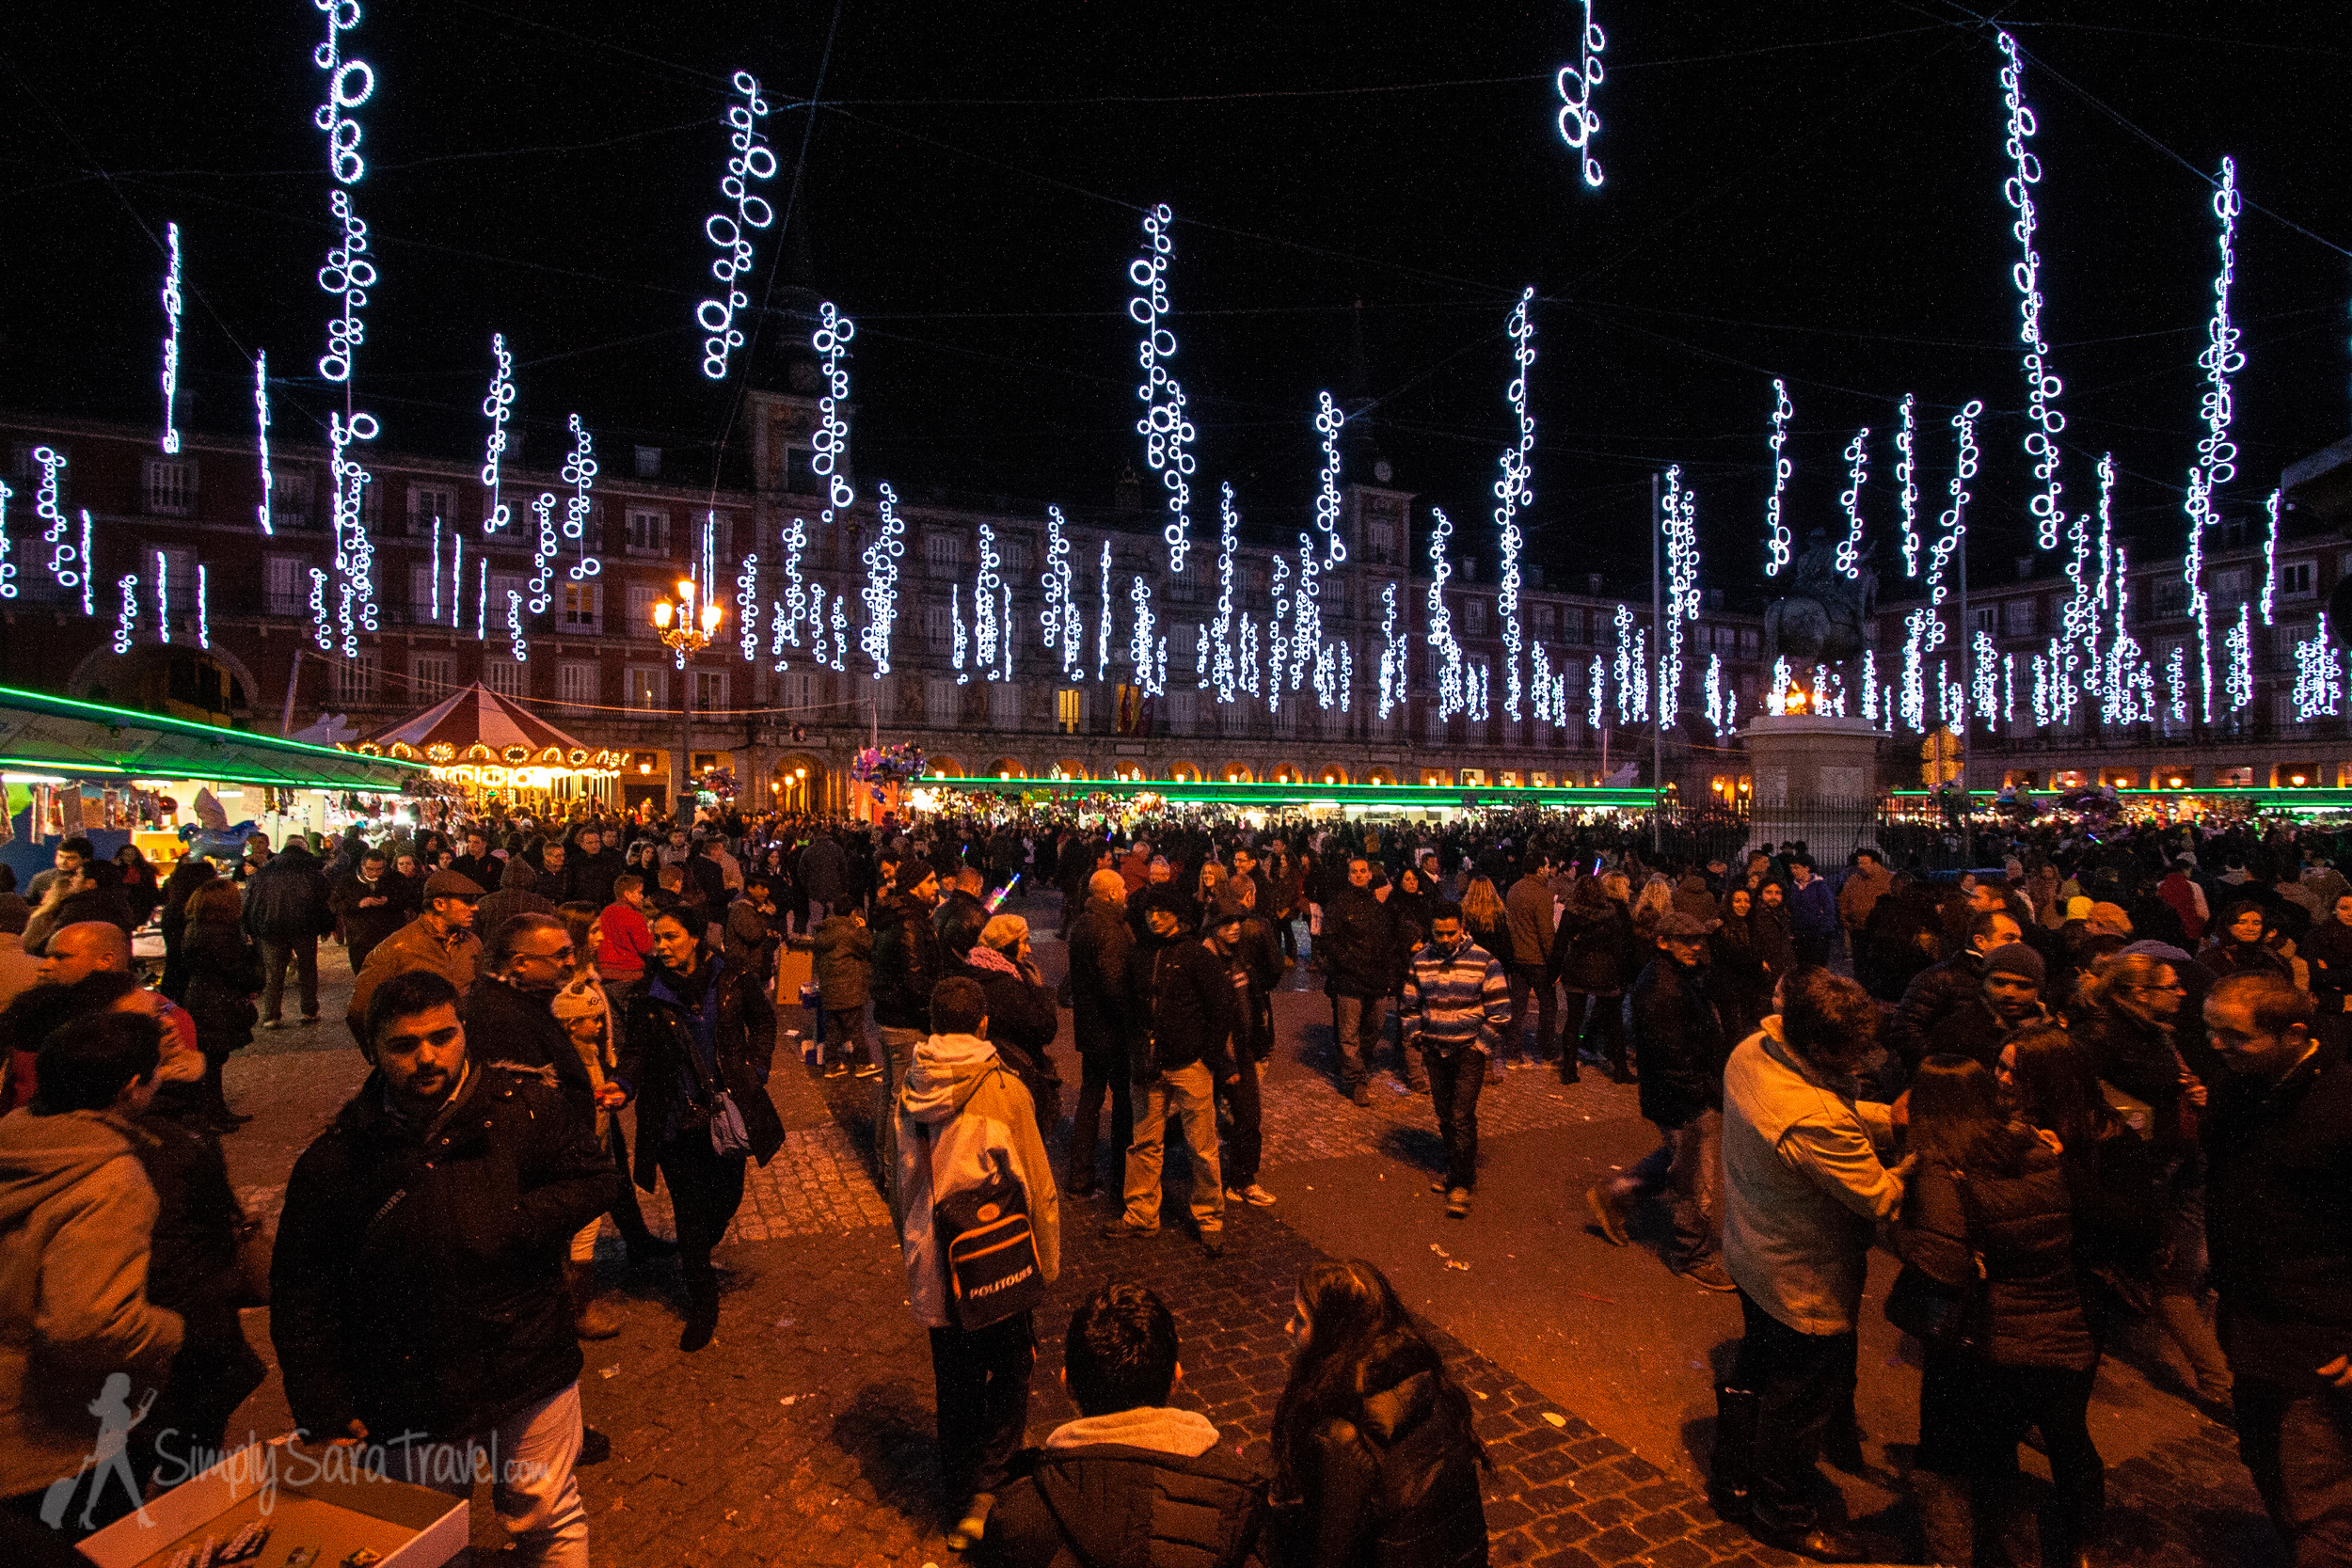 Pretty much the only photo I have from Madrid's Christmas market scene - uninspiring stalls but pretty lights.